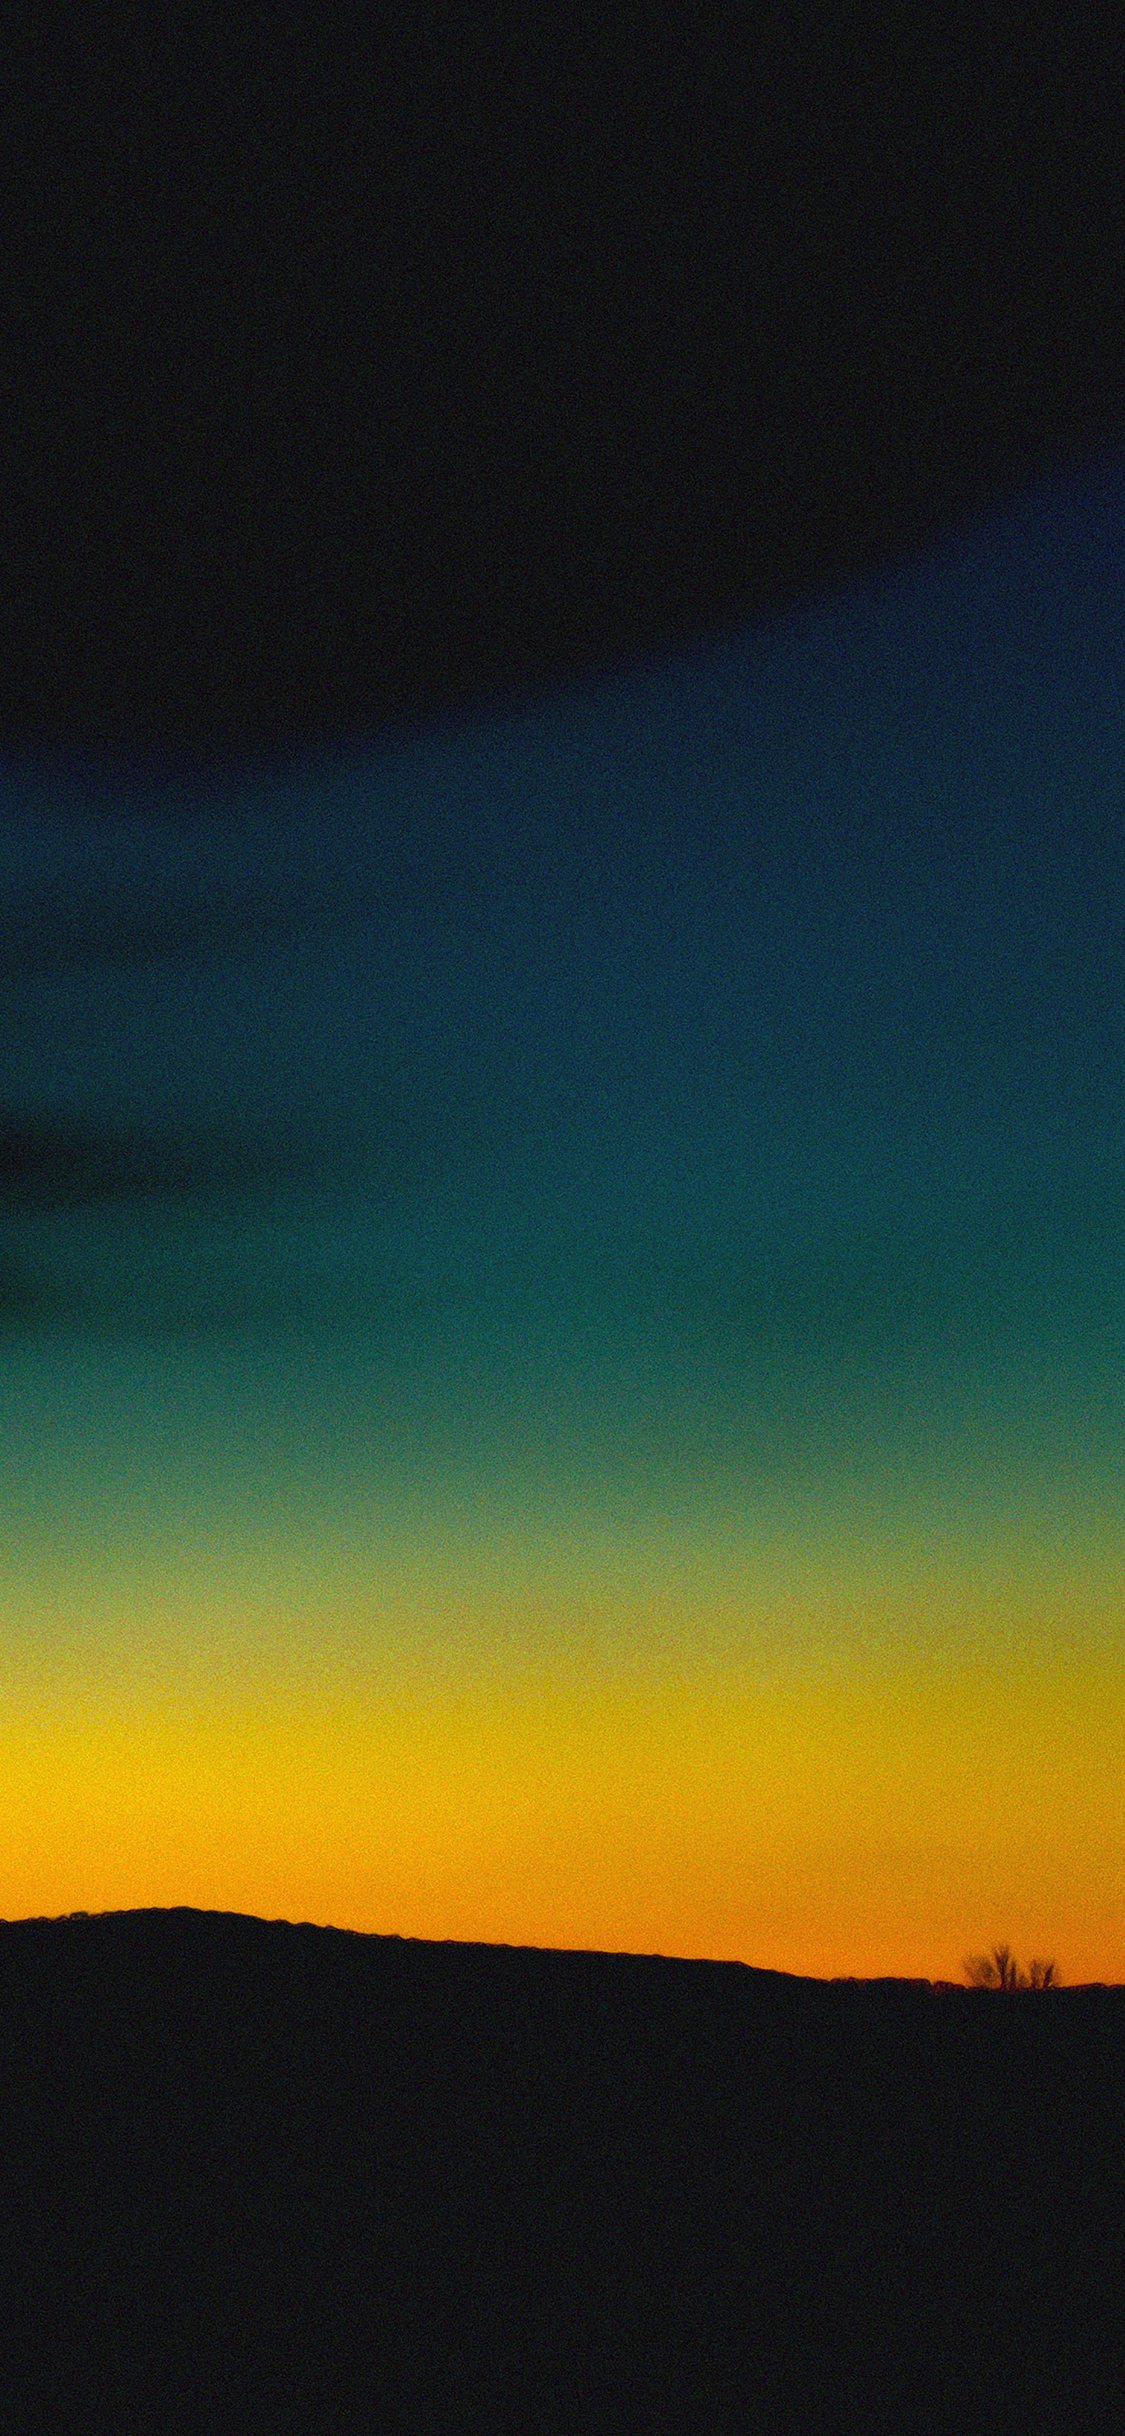 iPhoneXpapers.com-Apple-iPhone-wallpaper-mc95-wallpaper-orange-green-sky-sunset-nature